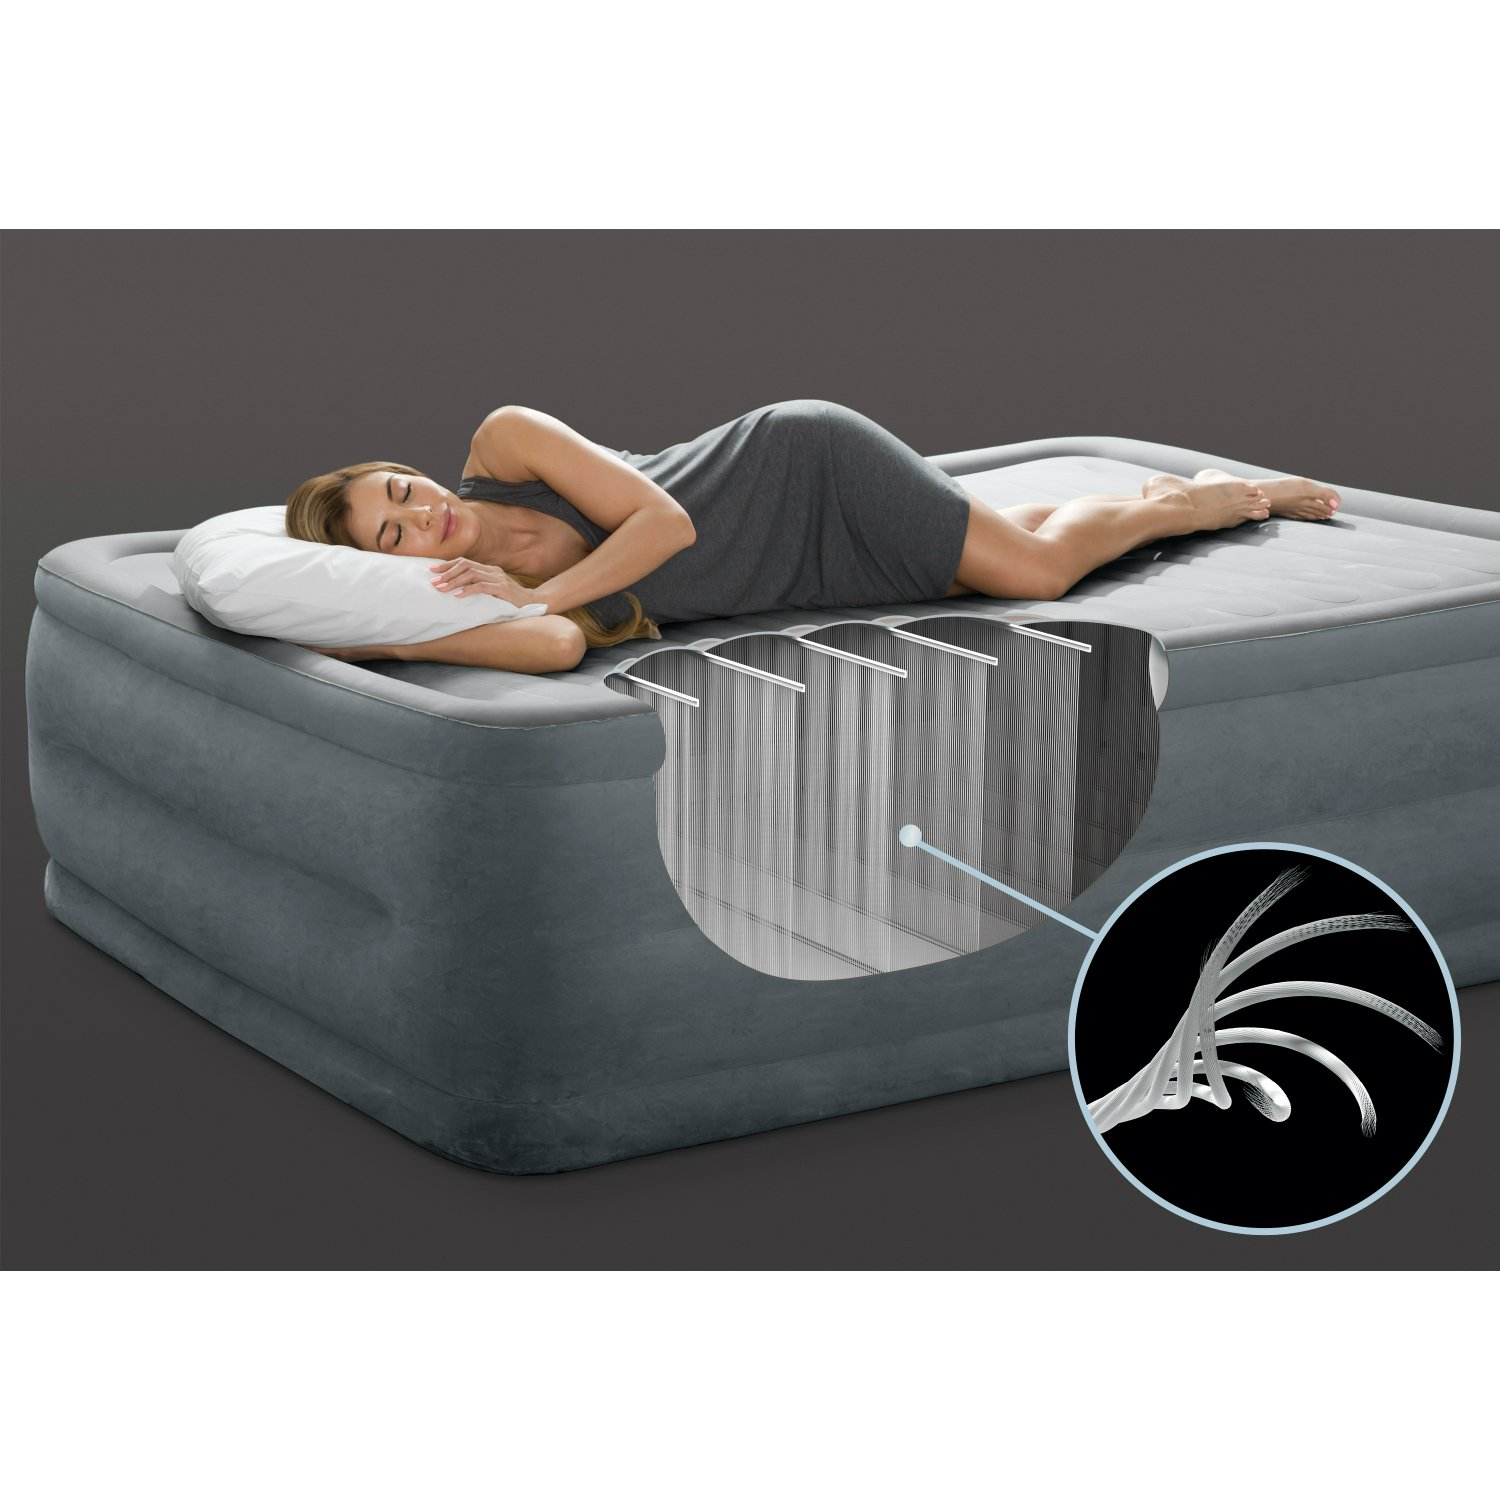 Intex Comfort Plush Elevated Dura-Beam Airbed with Built-in Electric Pump, Bed Height 18'', Twin by Intex (Image #6)